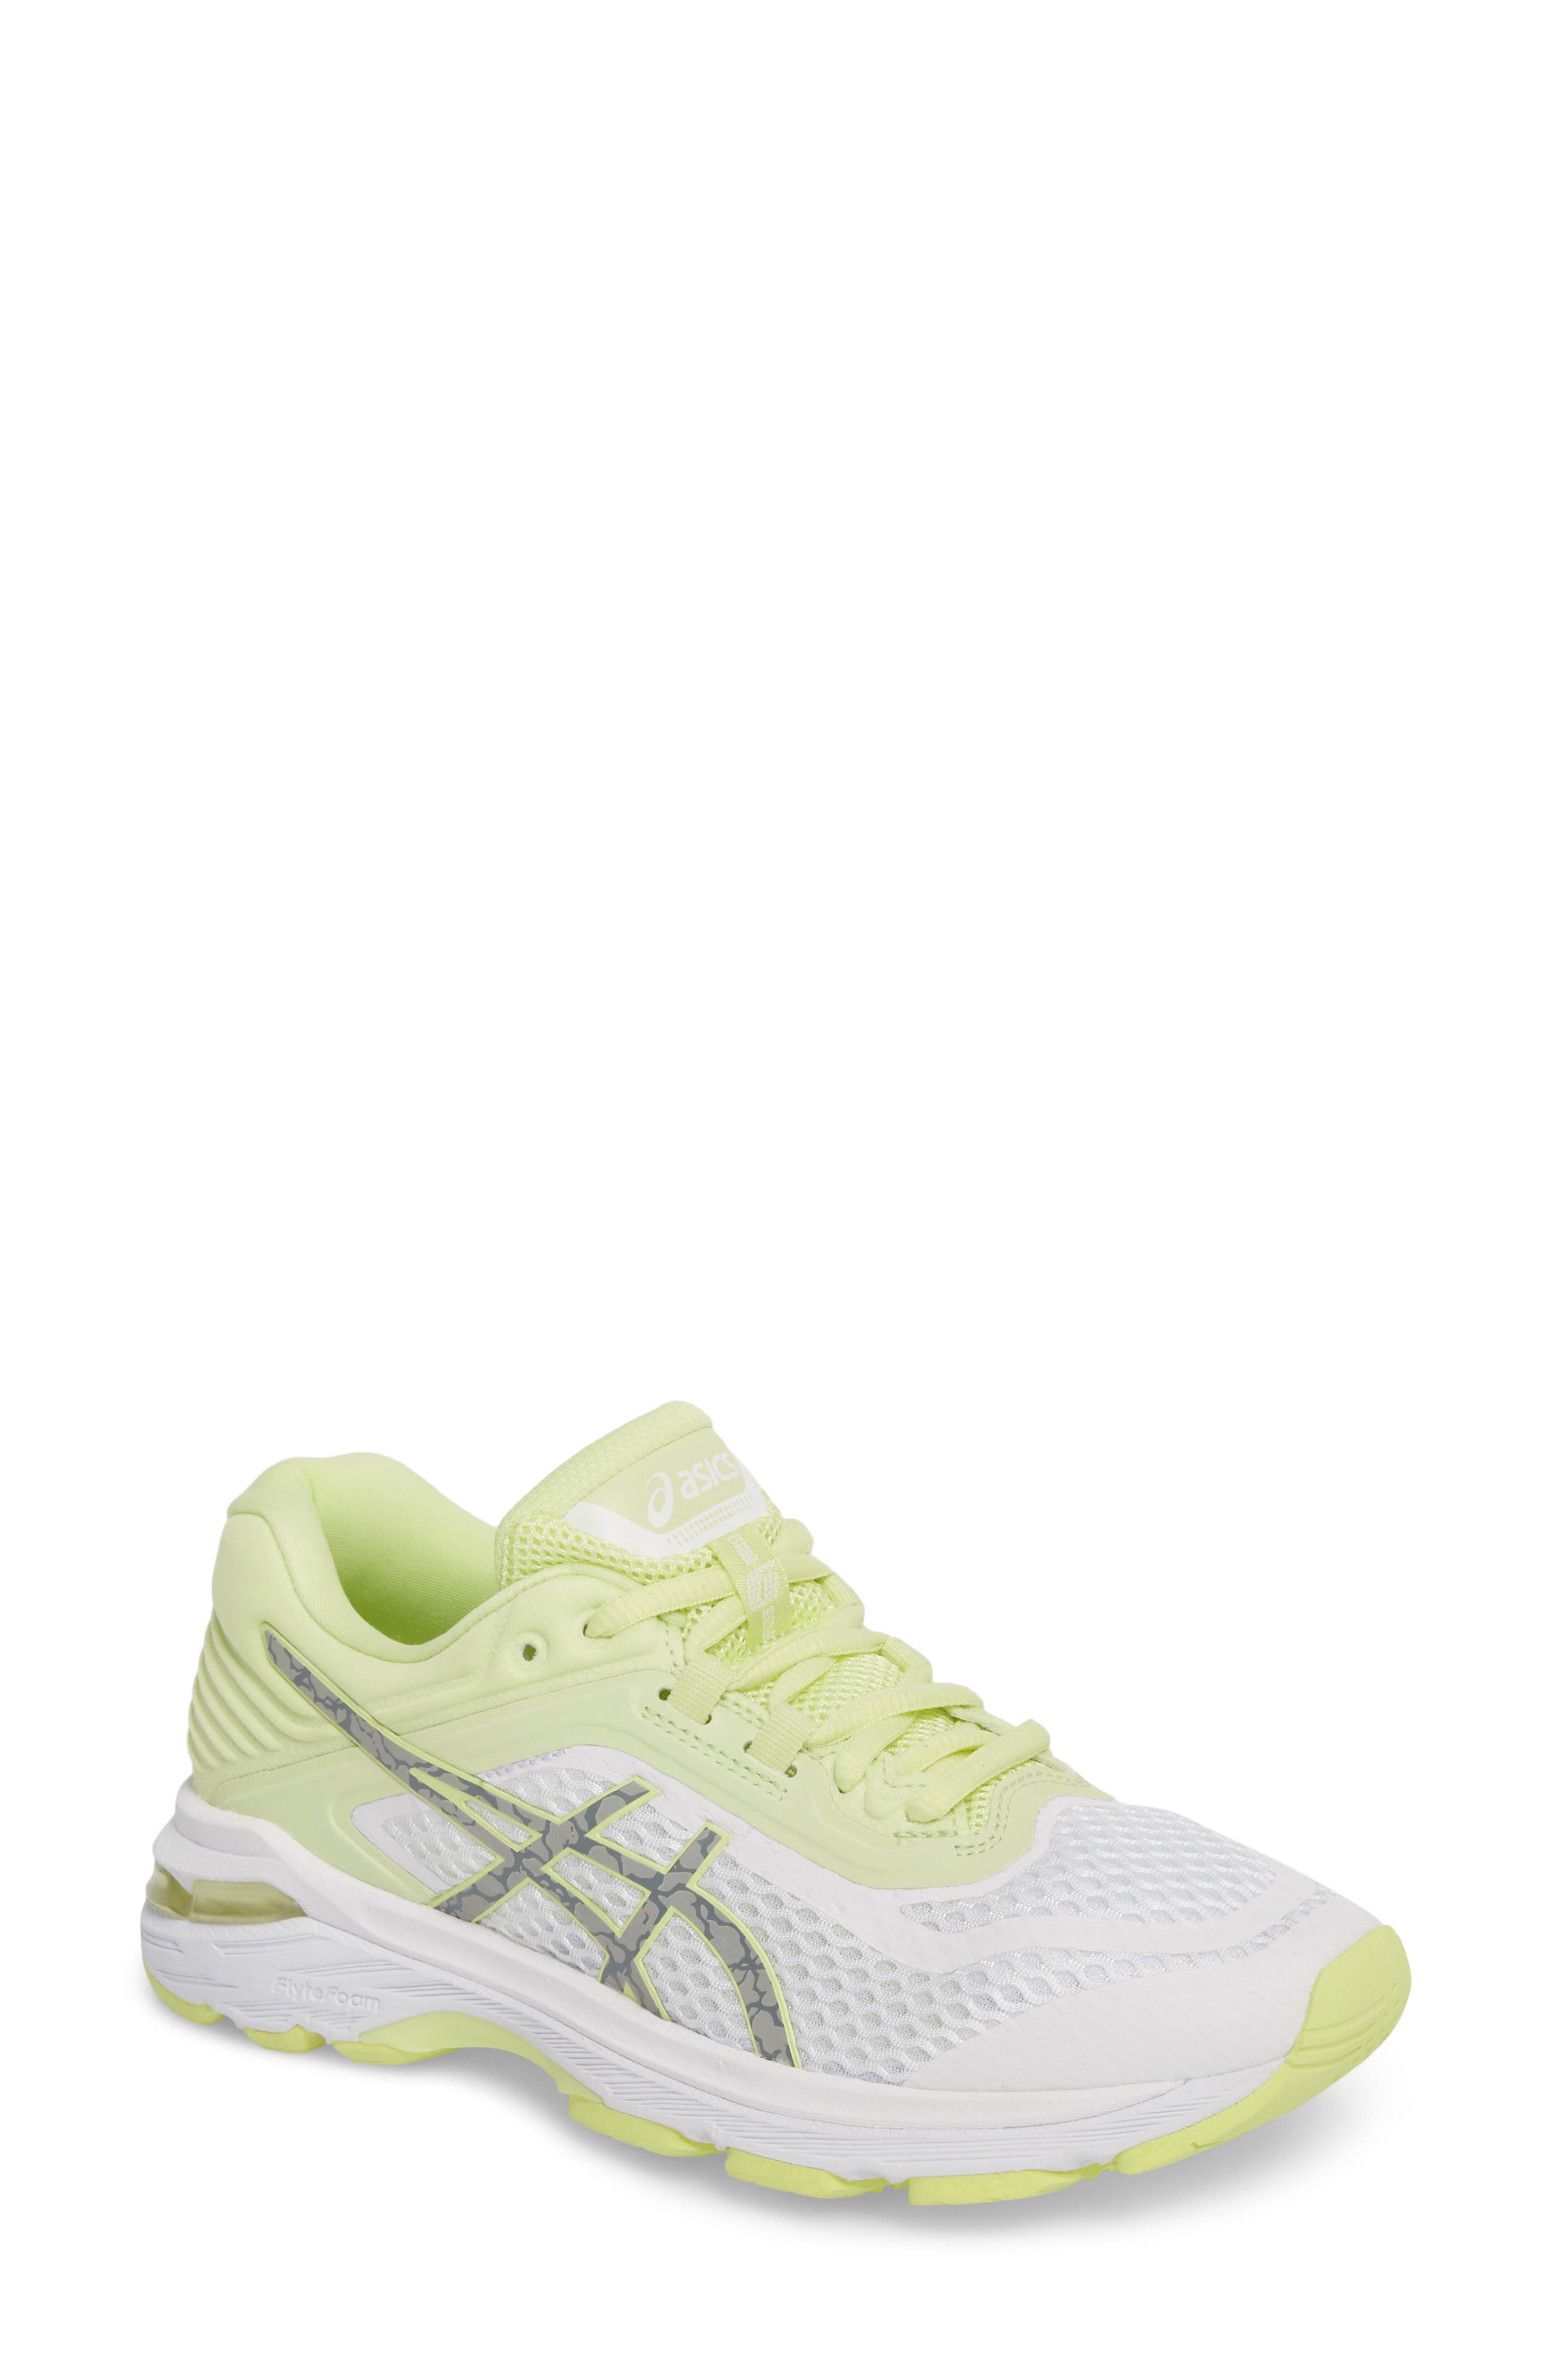 GT-2000 6 Running Shoe,                         Main,                         color, White/ Silver/ Limelight